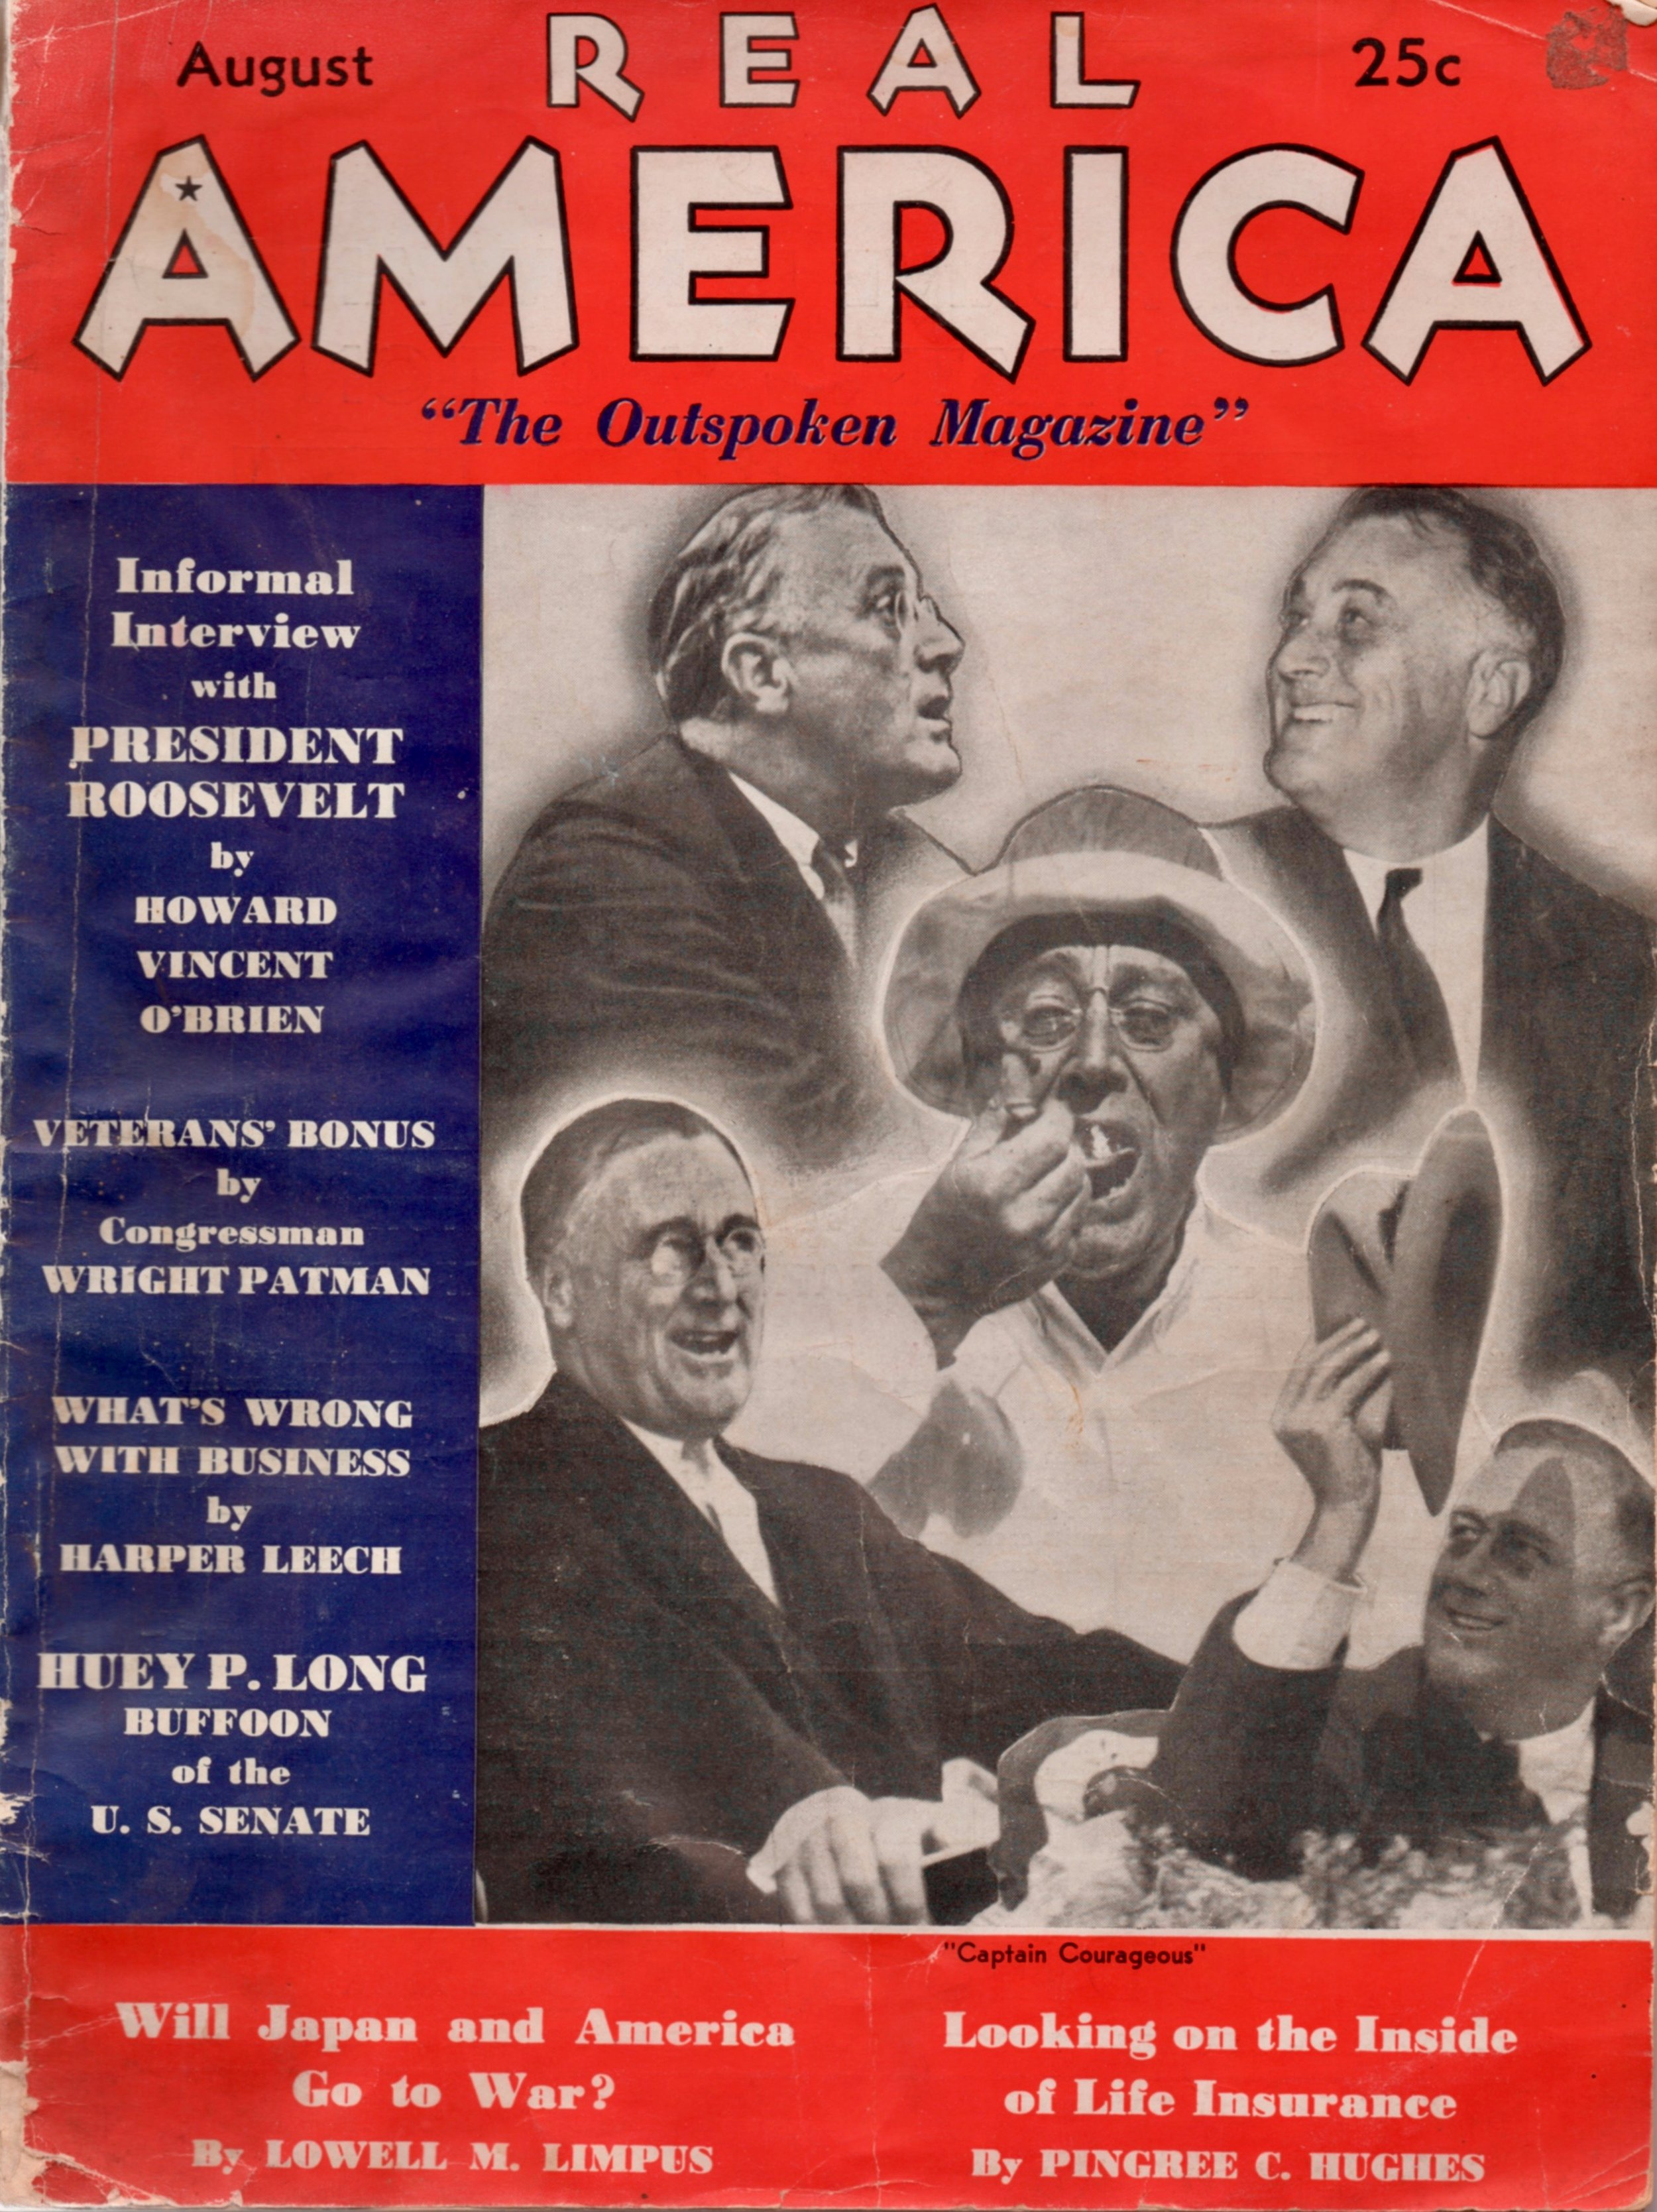 """My favorite headline from the cover: """"Huey P. Long: Buffoon of the U.S. Senate."""" Political junkies will recall that Long was the model for Willie Stark in  All the King's Men  by Robert Penn Warren."""